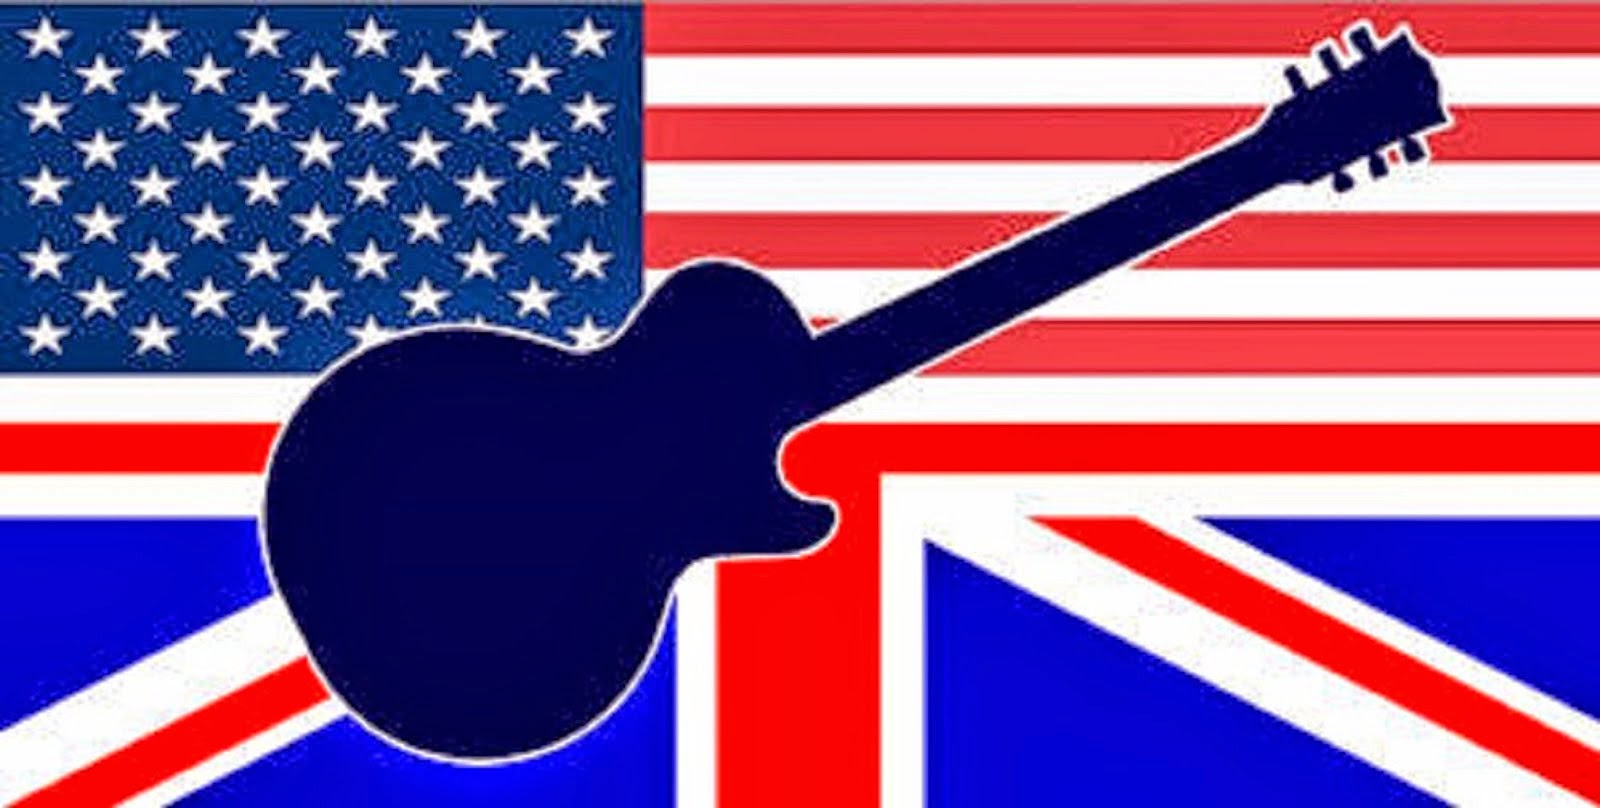 USA/ENG ROCK